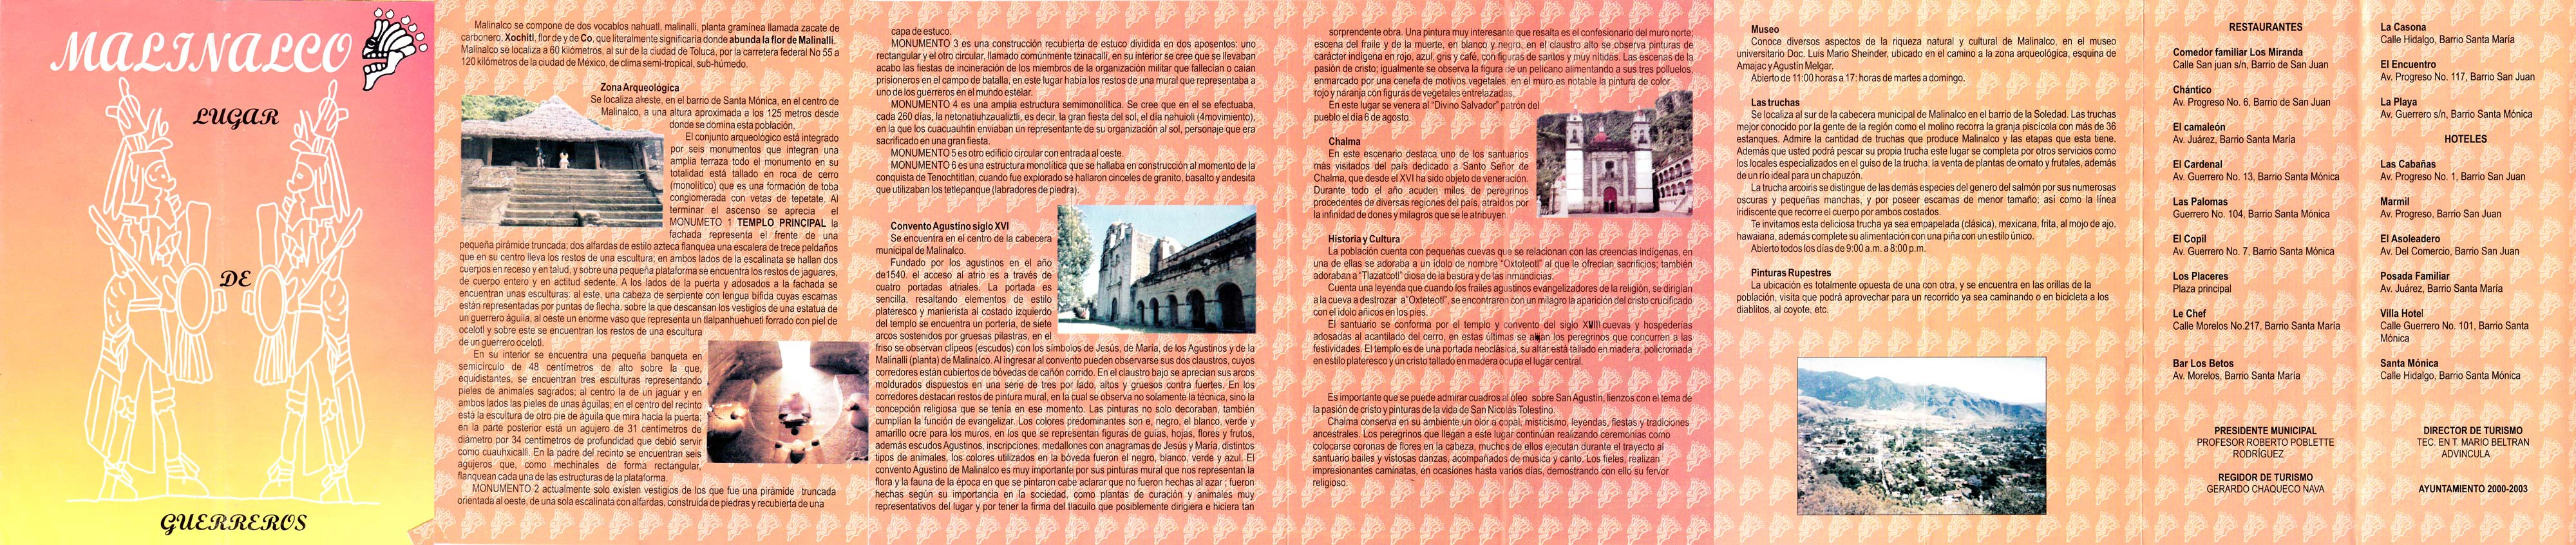 Malinalco Tourist Booklet from 2001